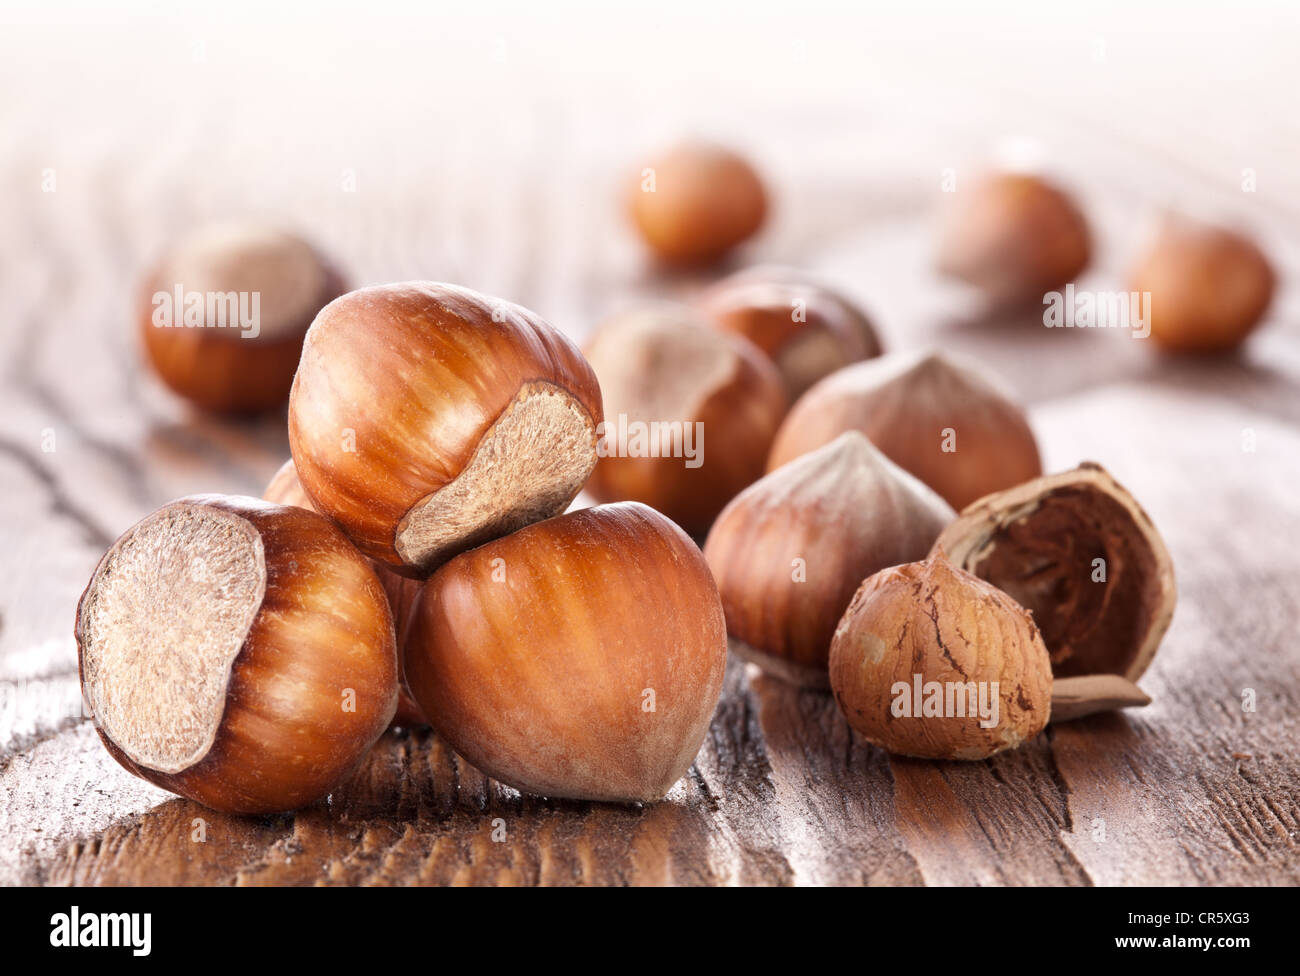 Filberts on a wooden table. Close-up shot. Stock Photo